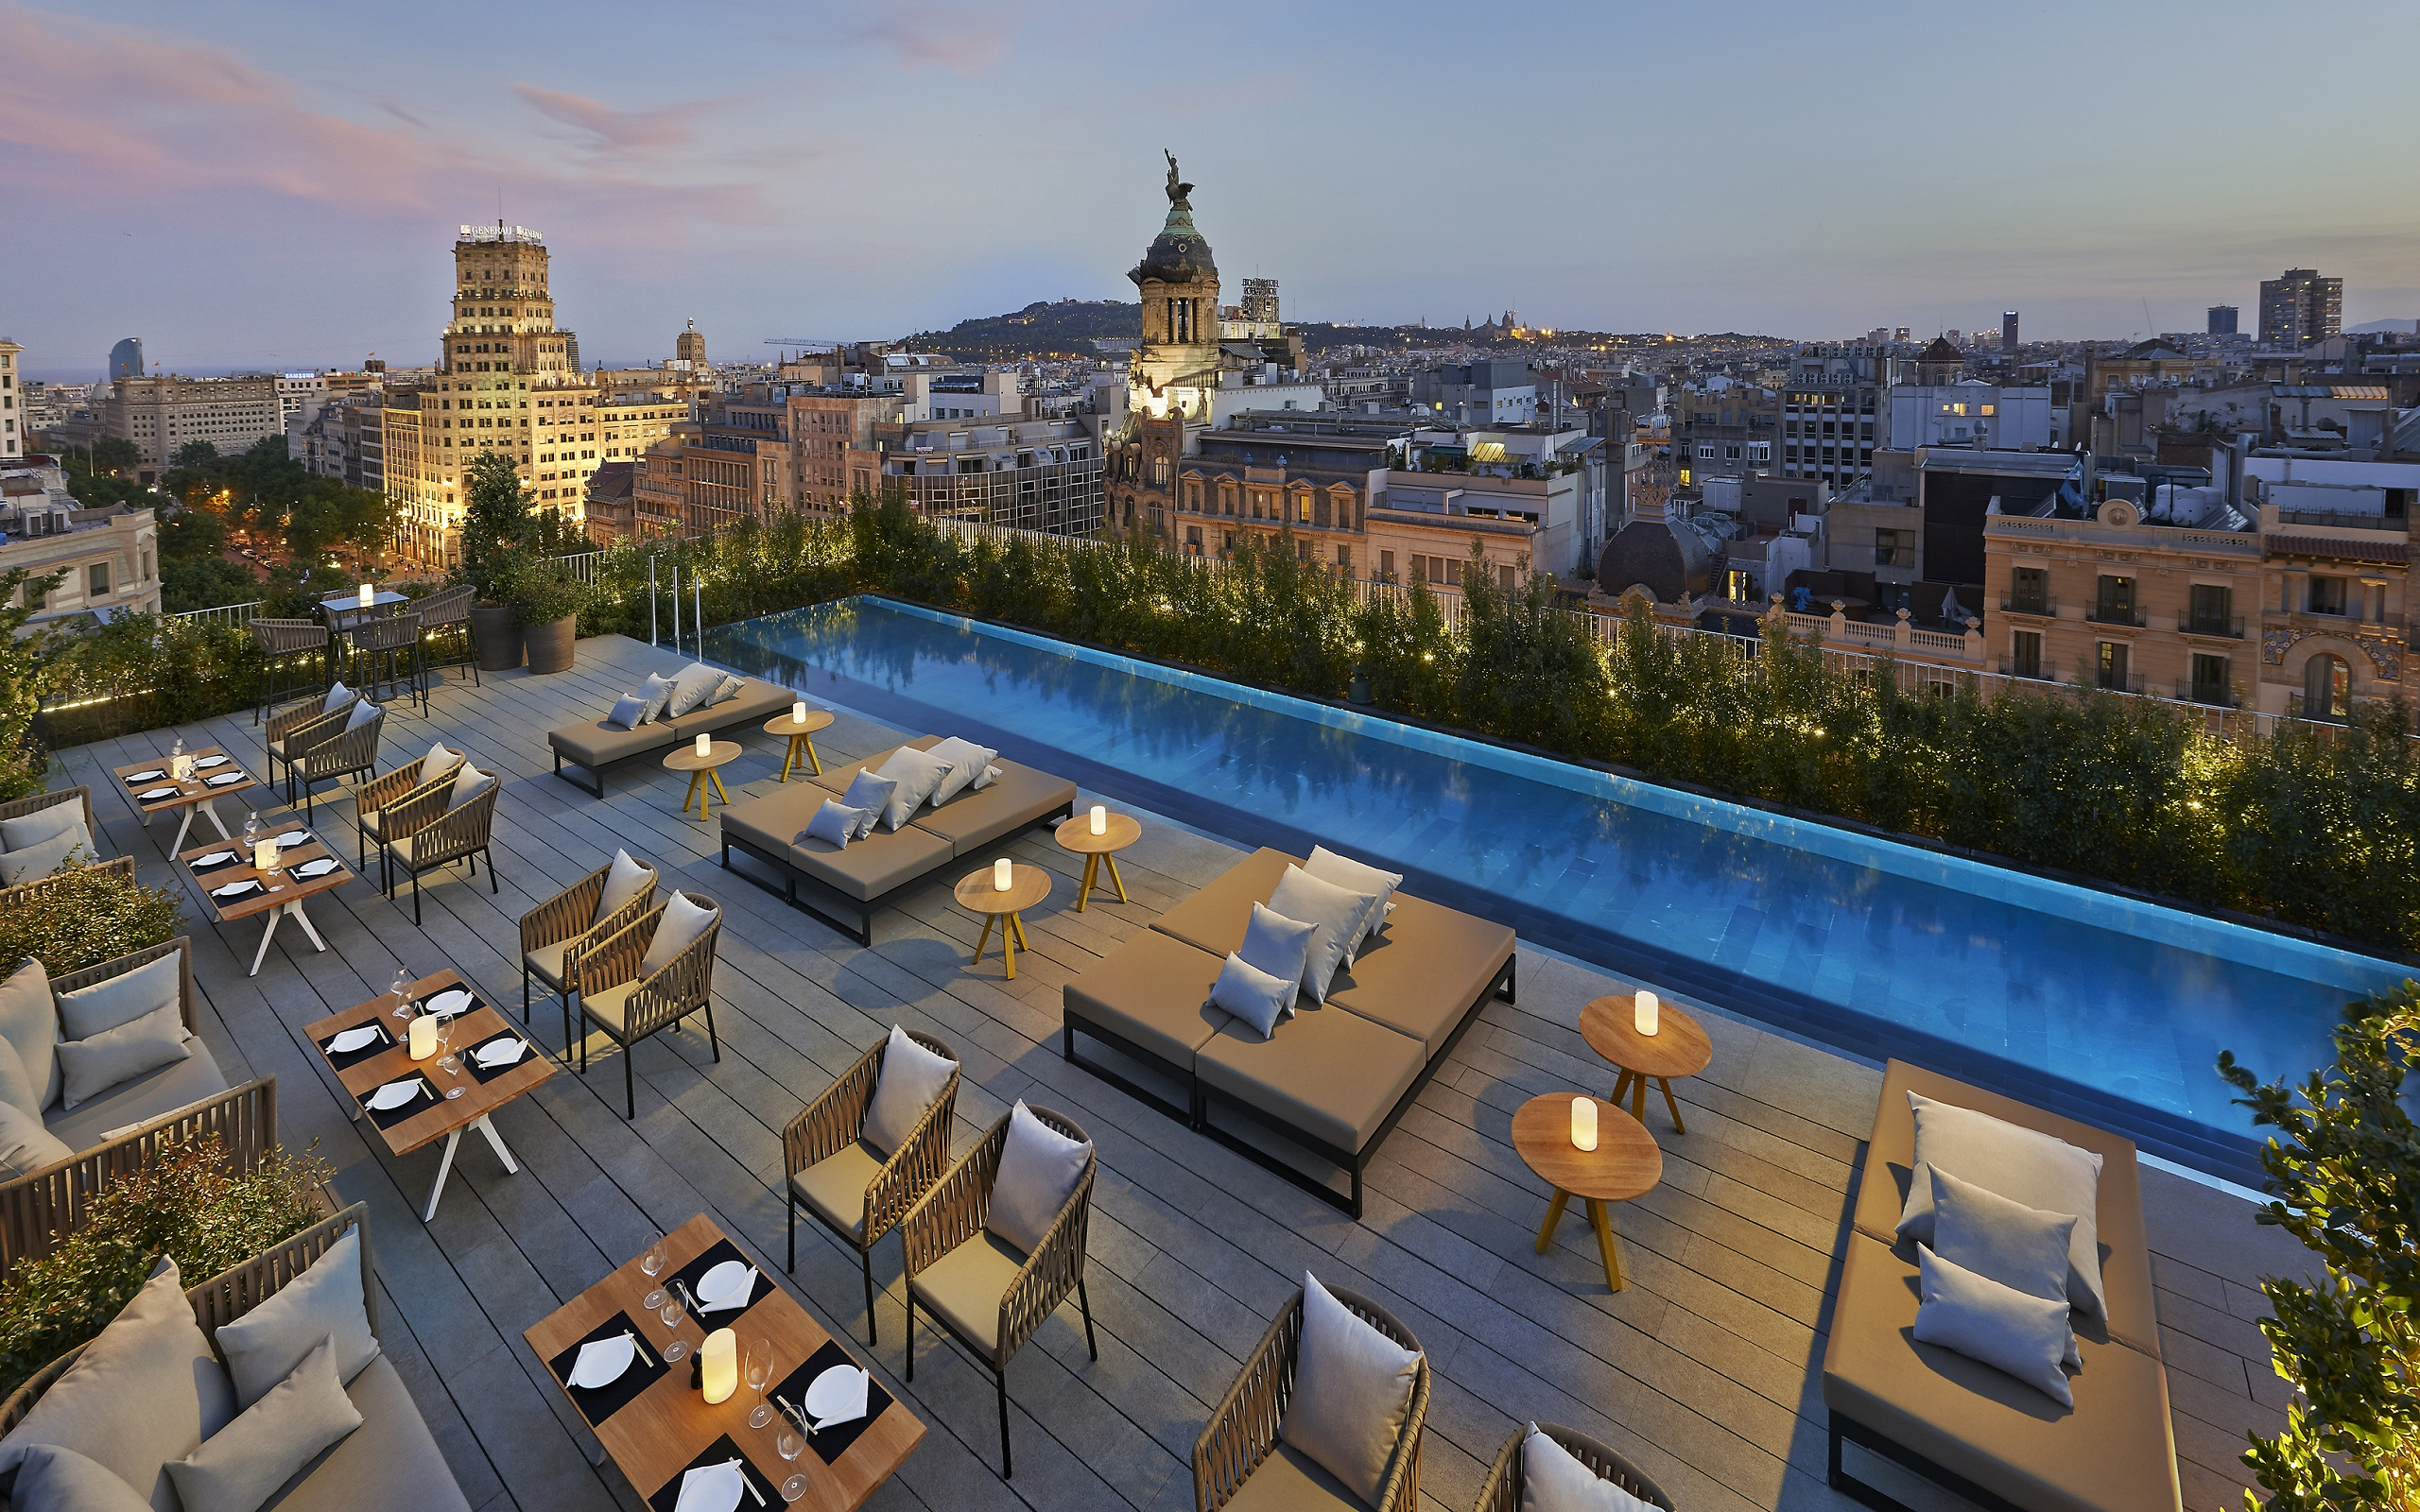 The Mandarin Oriental Hotel Boasts a Spectacular 360-Degree View of the Great City from its Terrace Rooftop